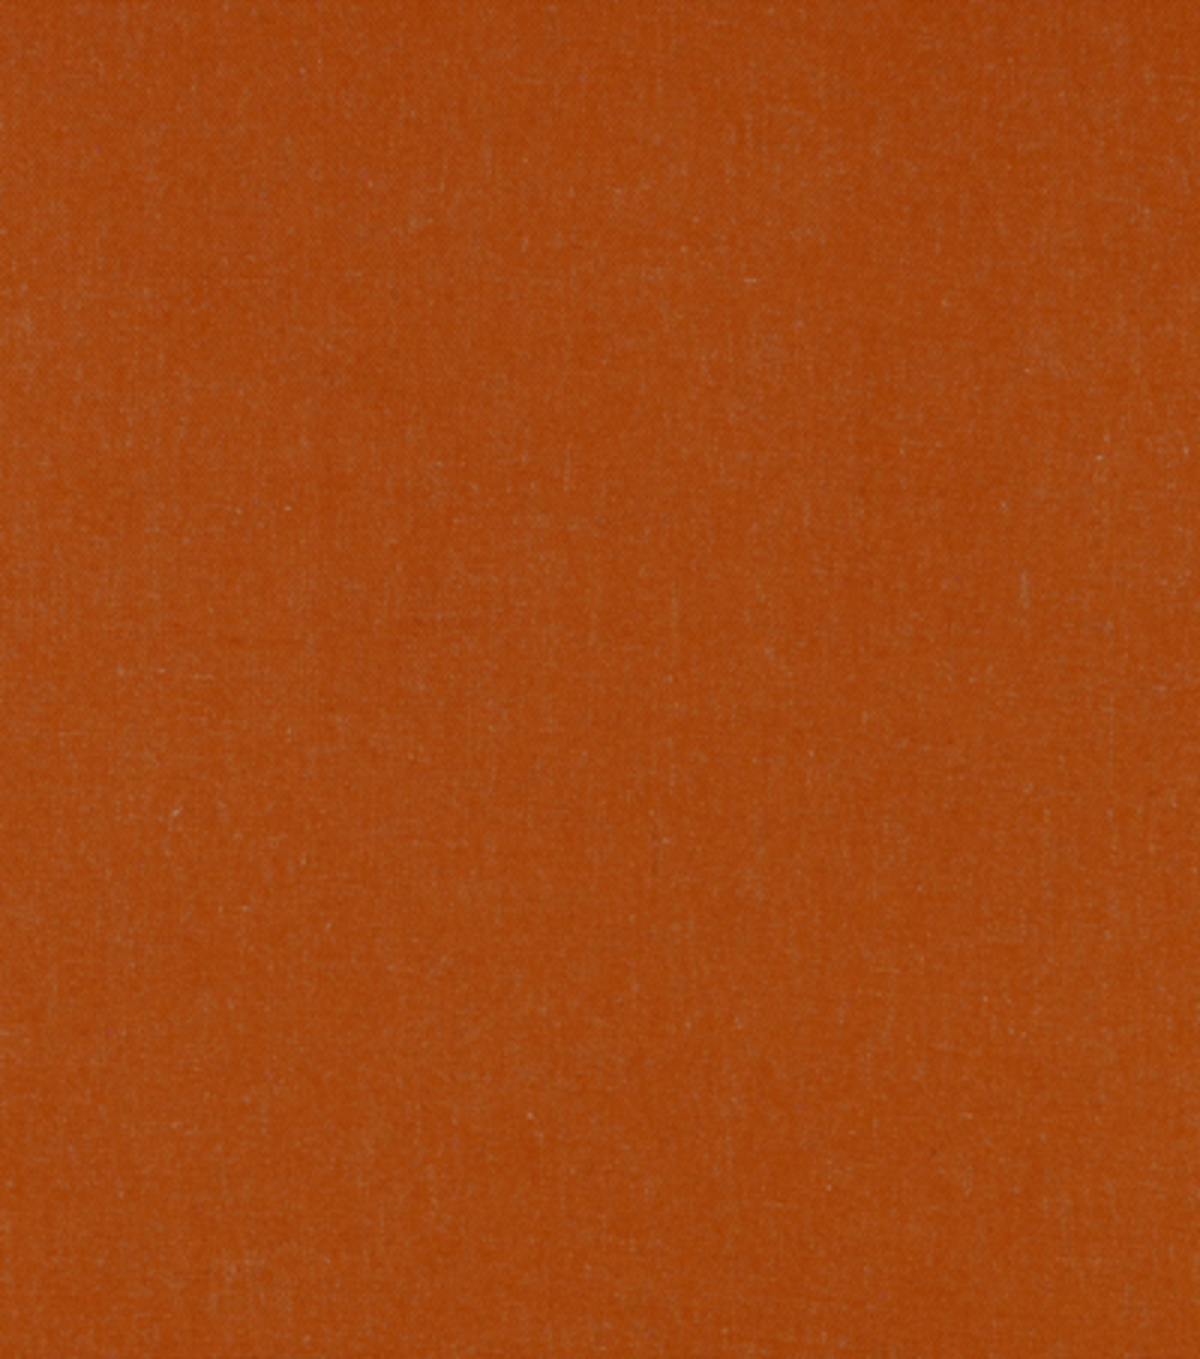 Home Decor 8\u0022x8\u0022 Fabric Swatch-Covington Melrose 340 Mandarin